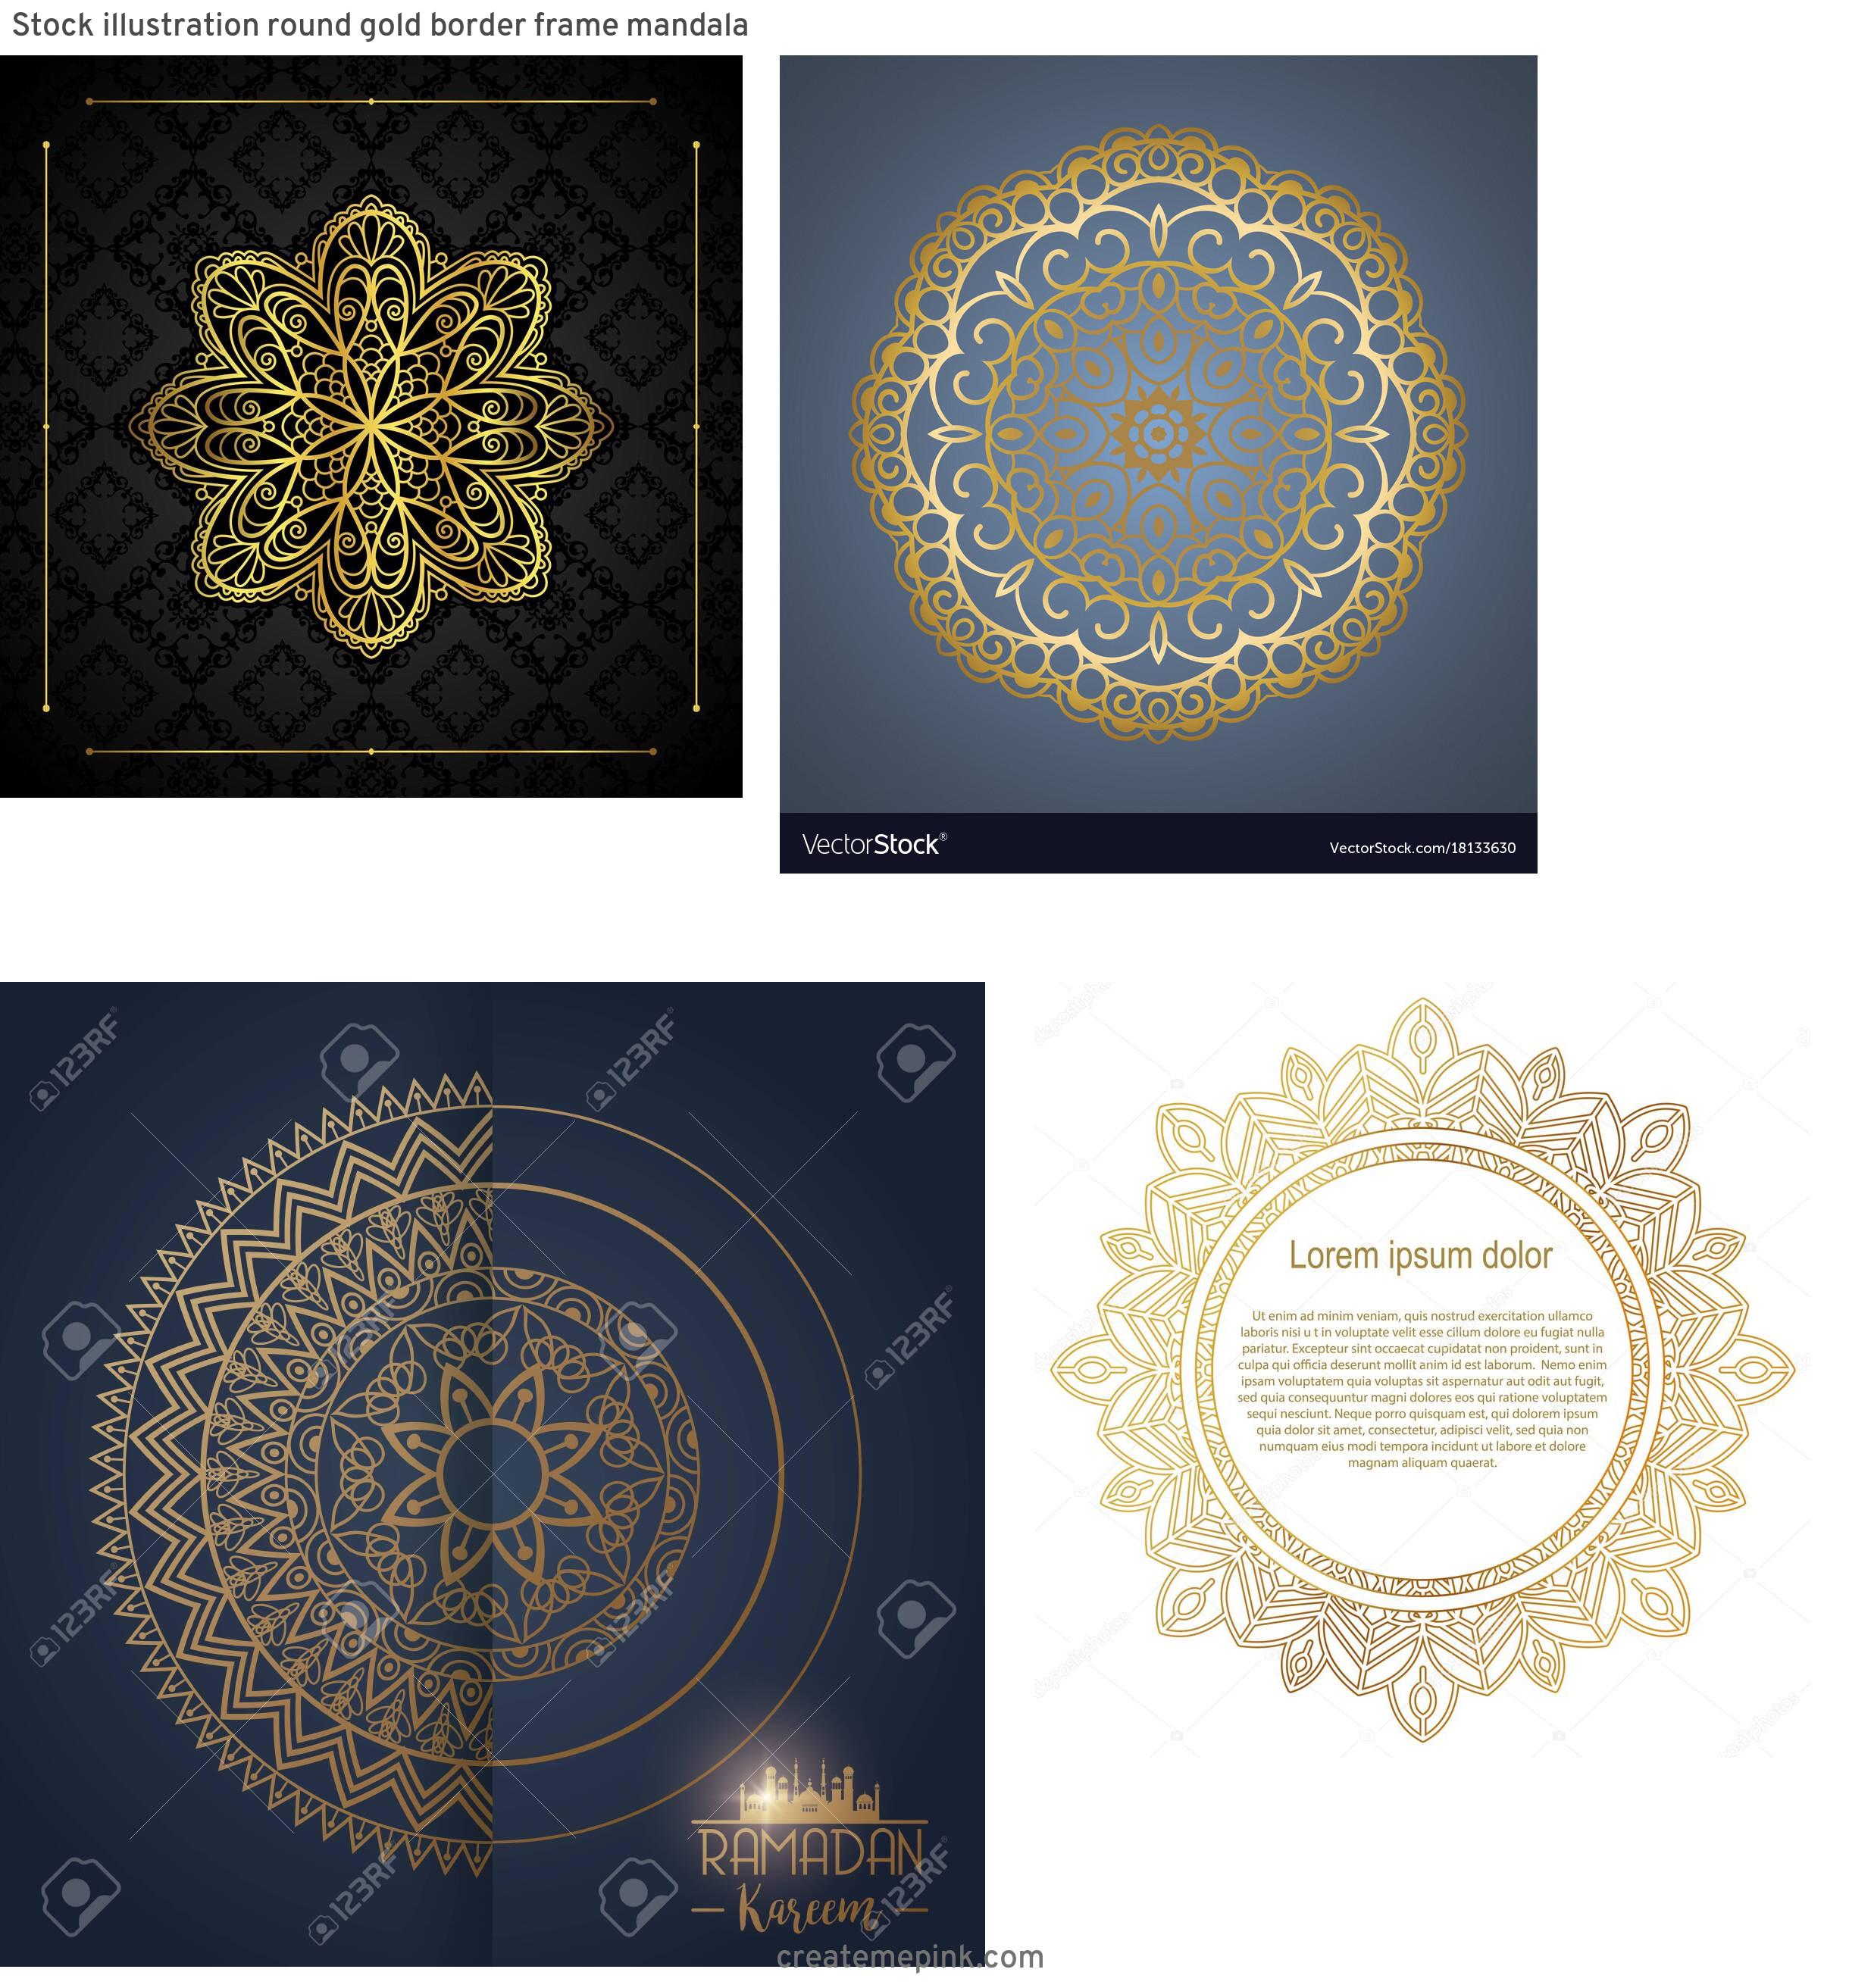 Mandala Gold Frame Vector: Stock Illustration Round Gold Border Frame Mandala